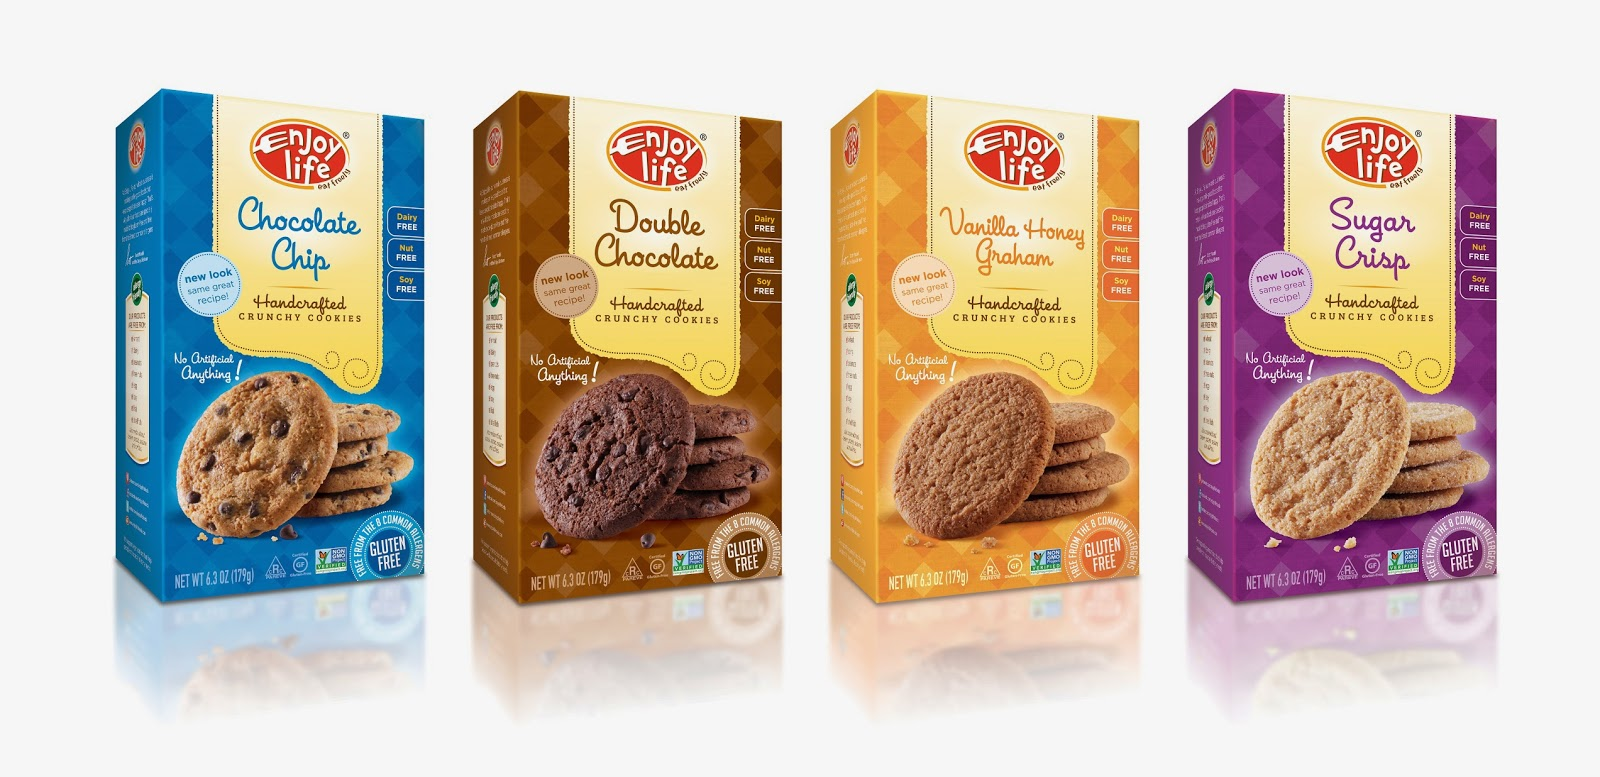 Gluten Free Foods And Egg Free